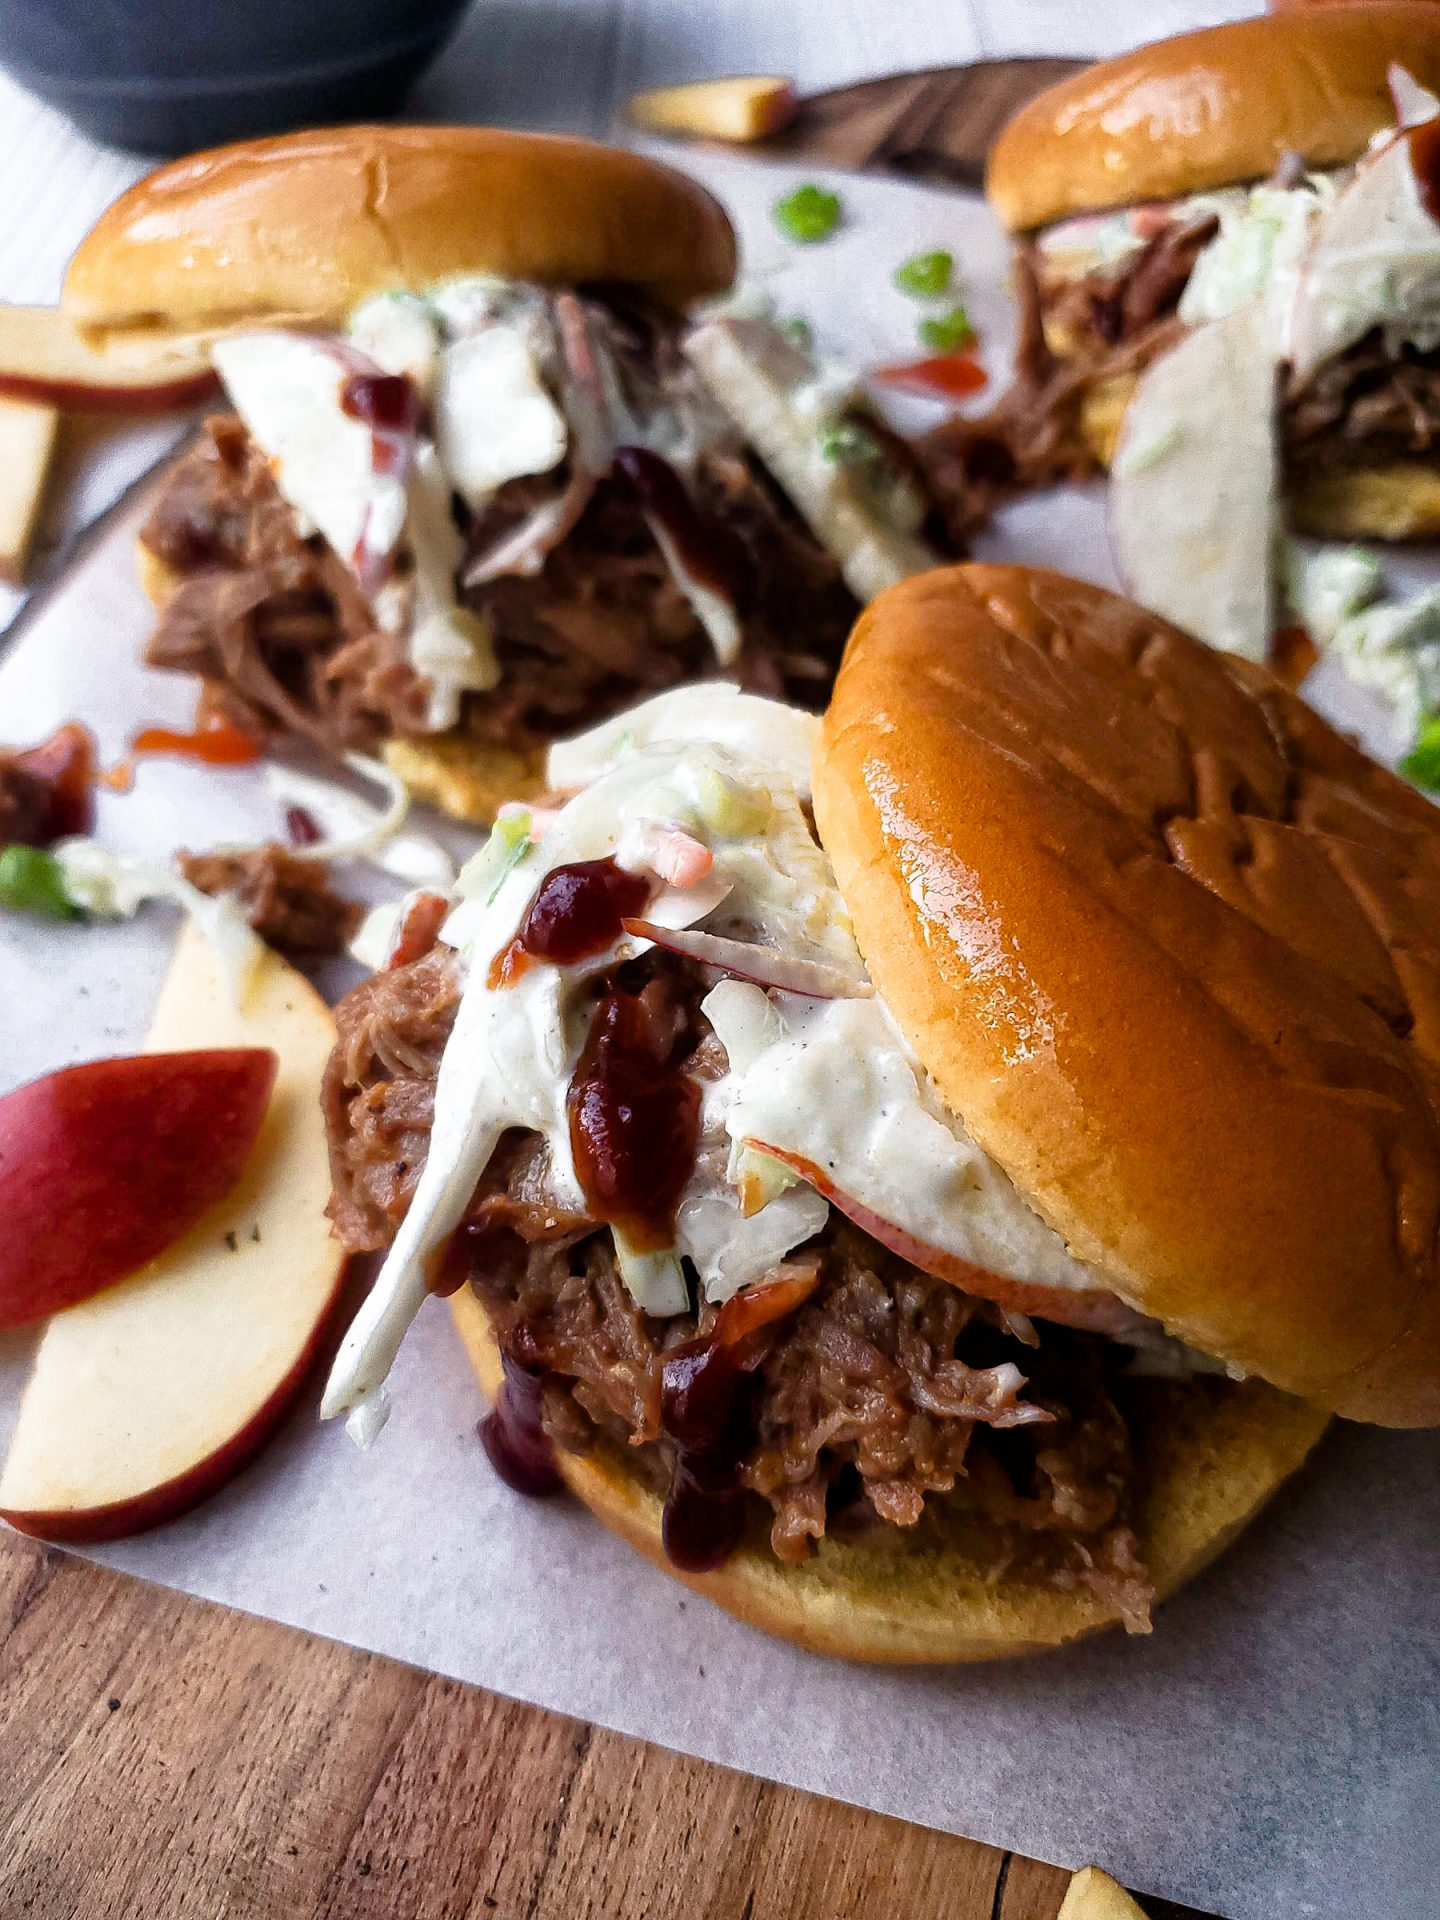 Apple Cider Braised Pulled Pork Sandwiches with Apple Slaw